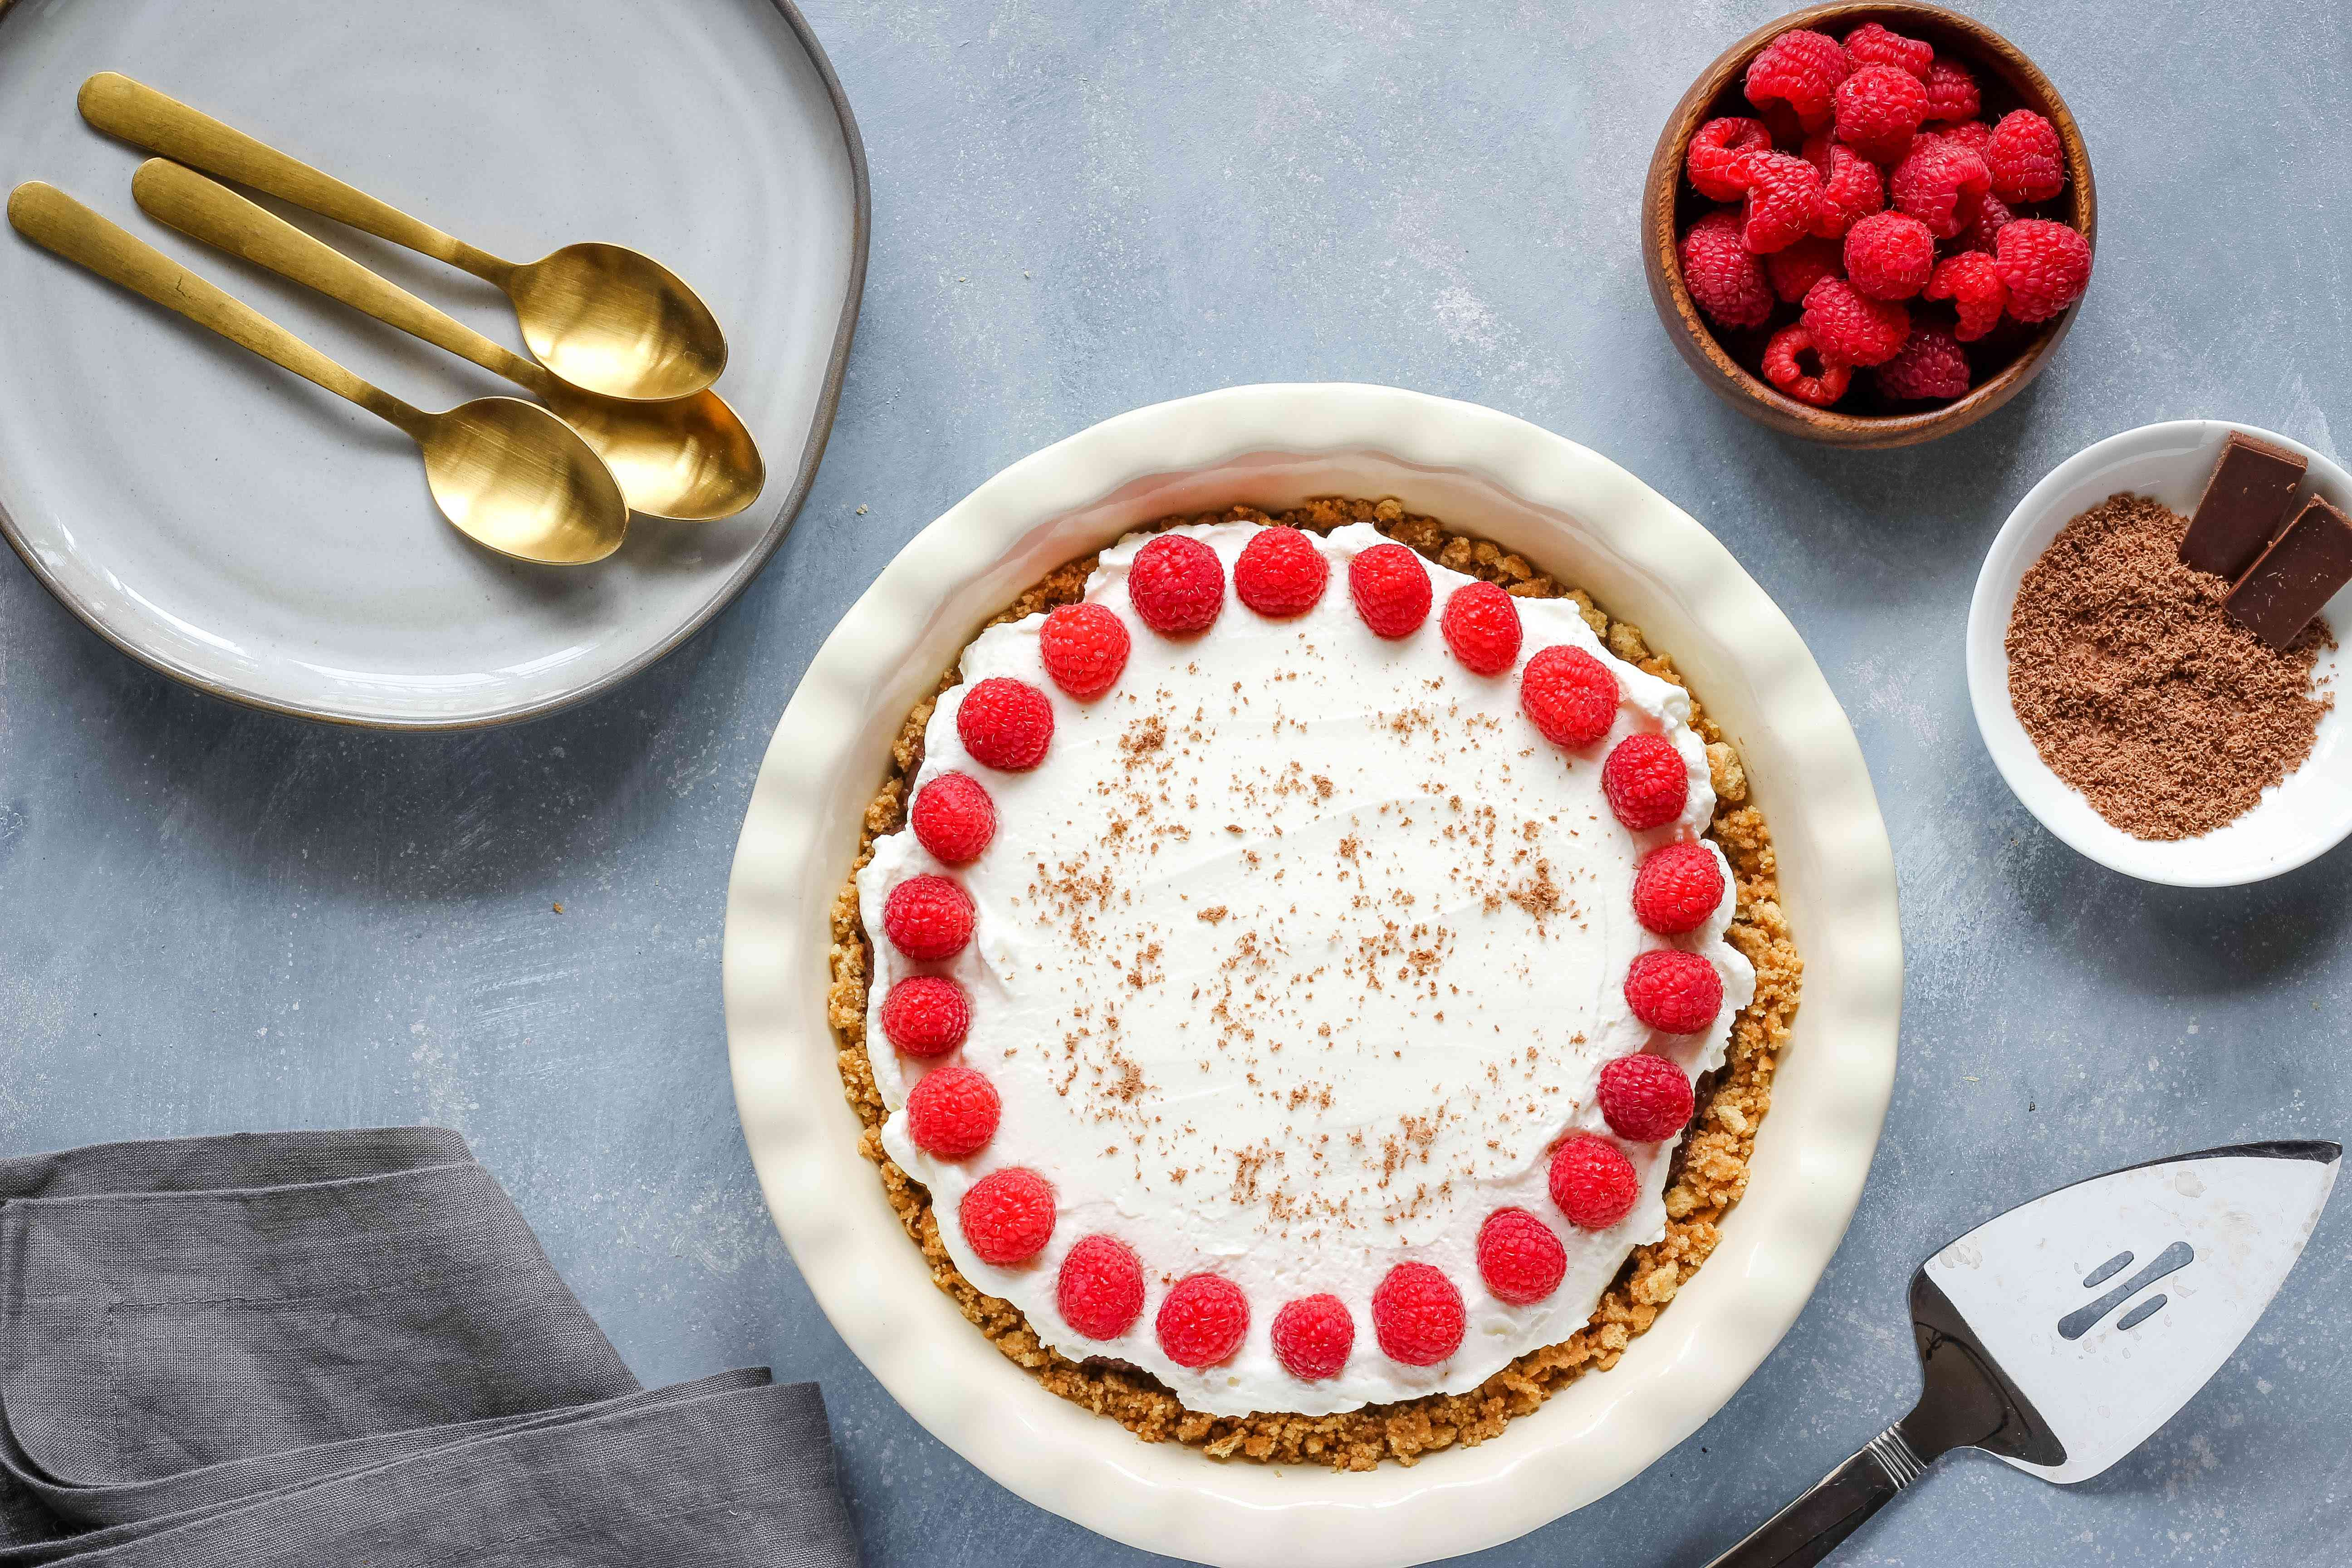 Chocolate pudding pie topped with raspberries and chocolate shavings